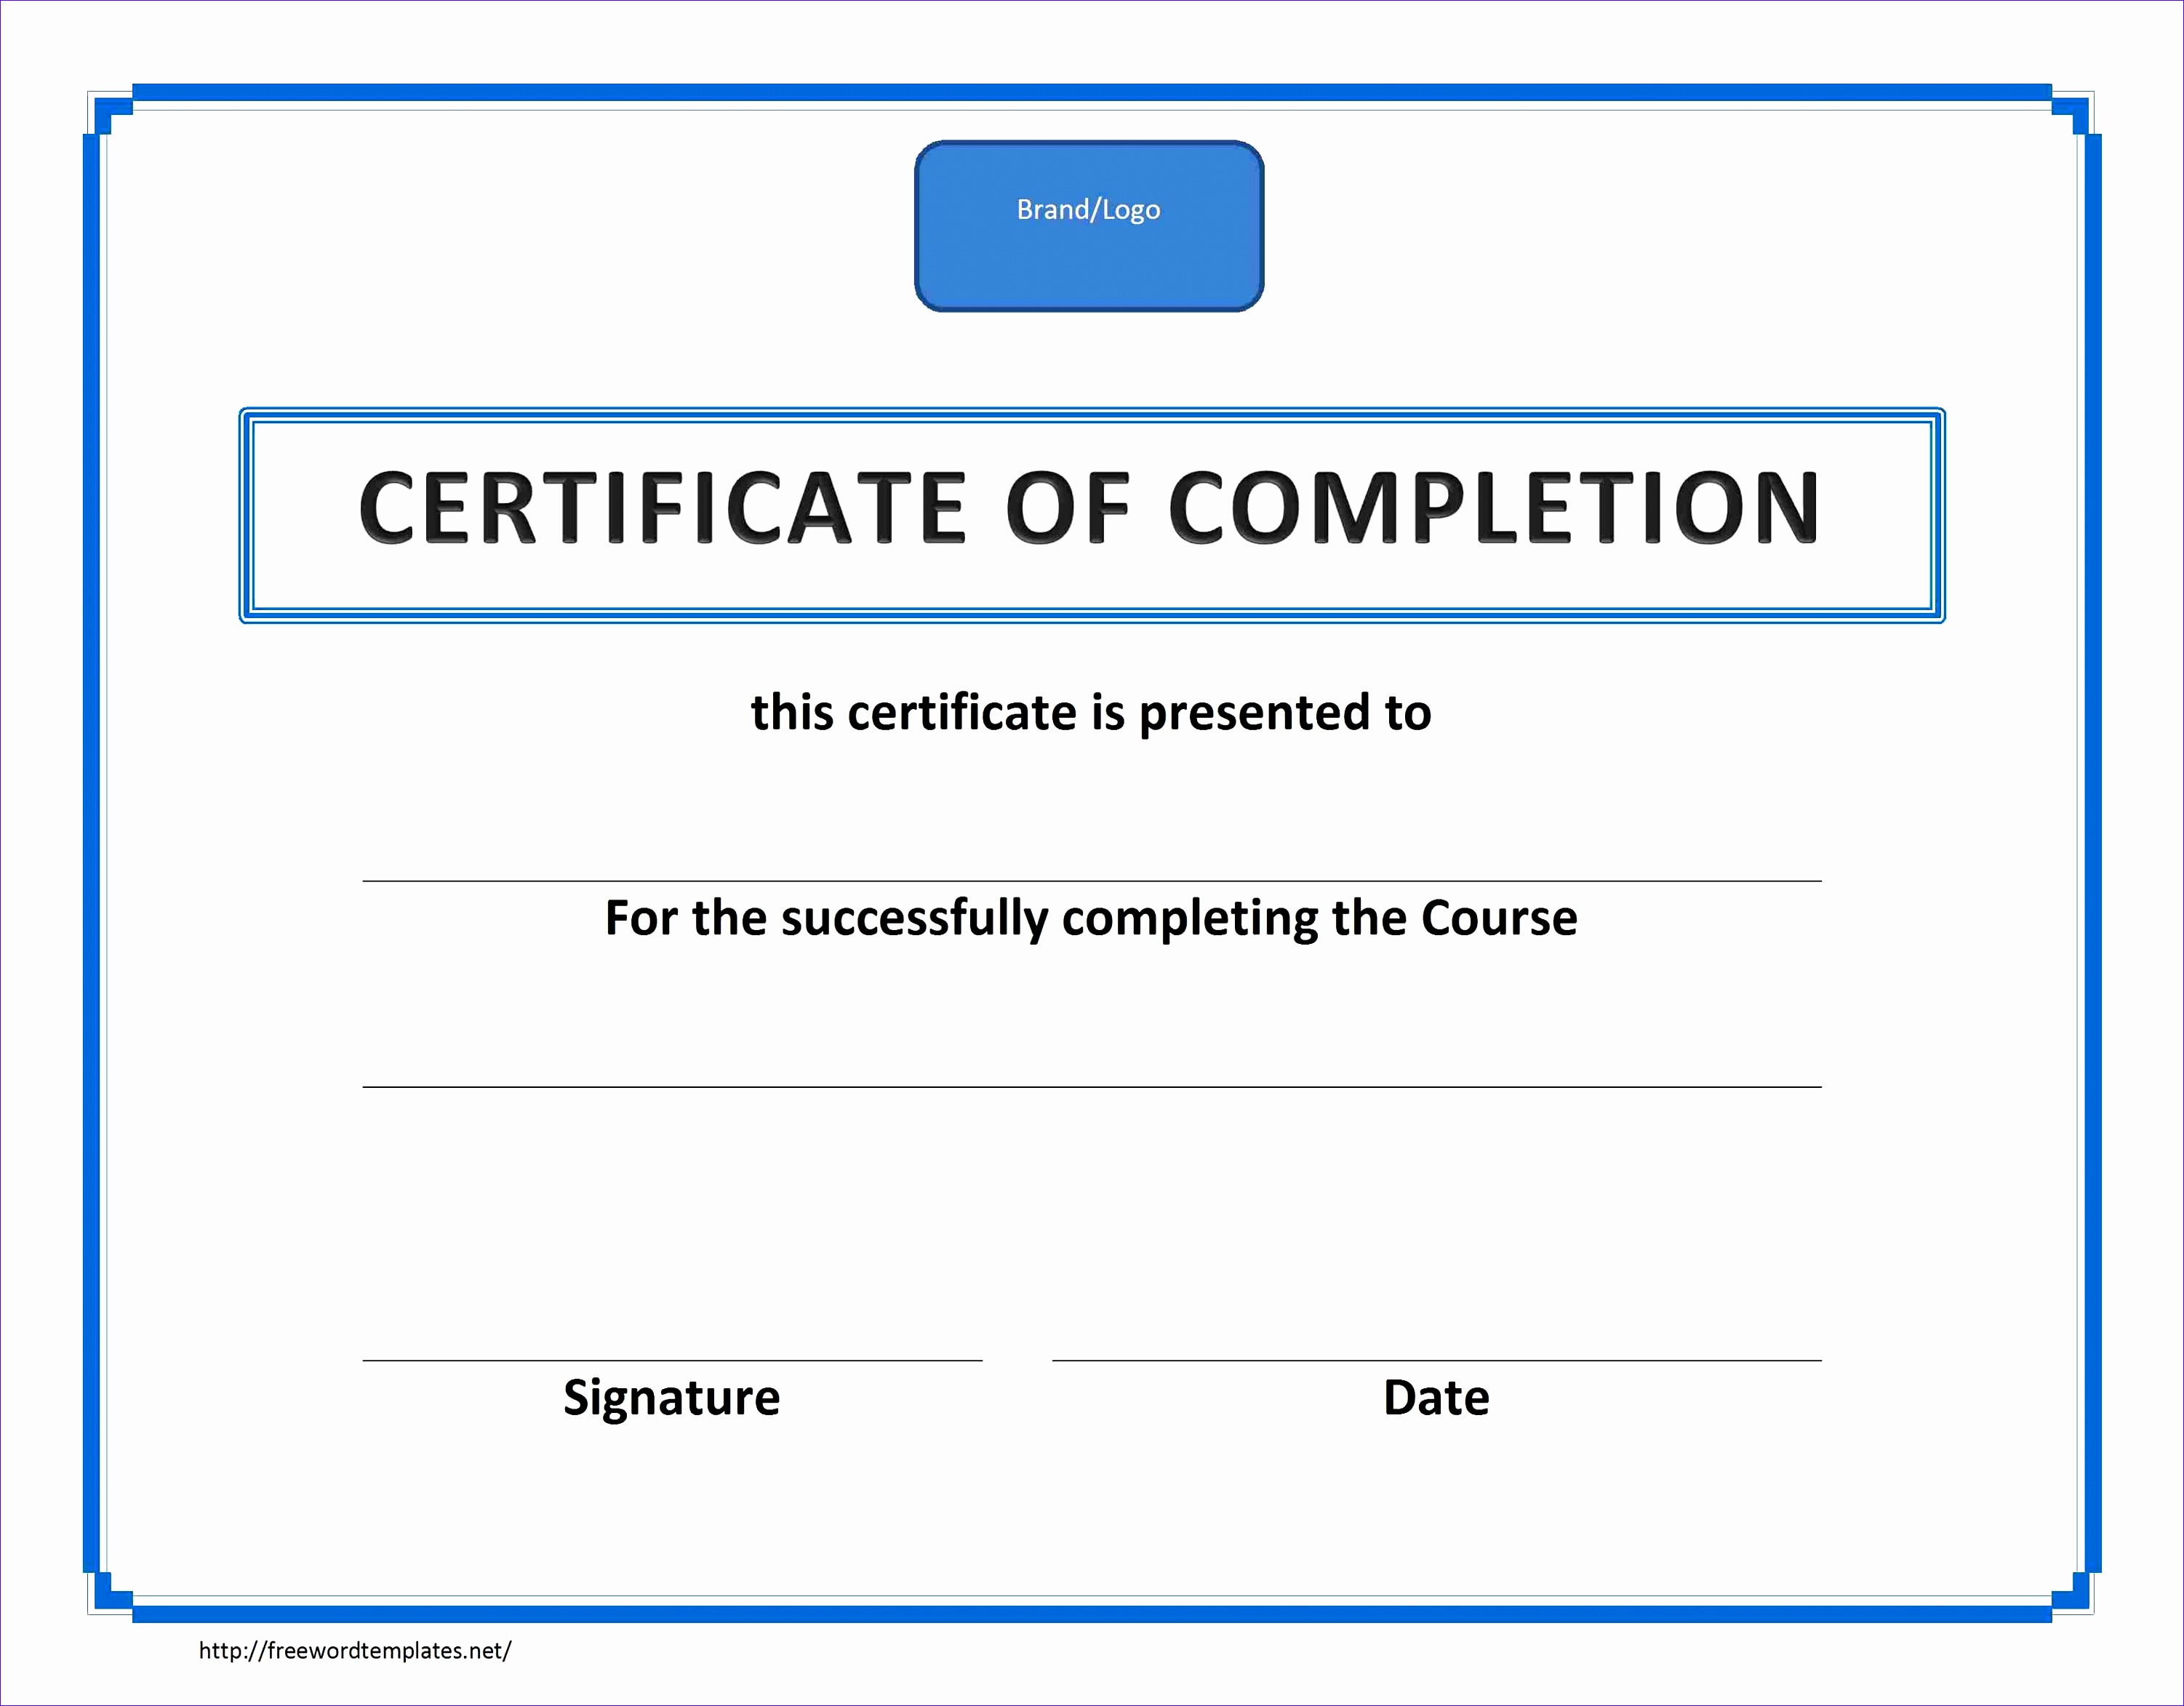 Training Certificate of pletion Landscape Default MS Word Border 21